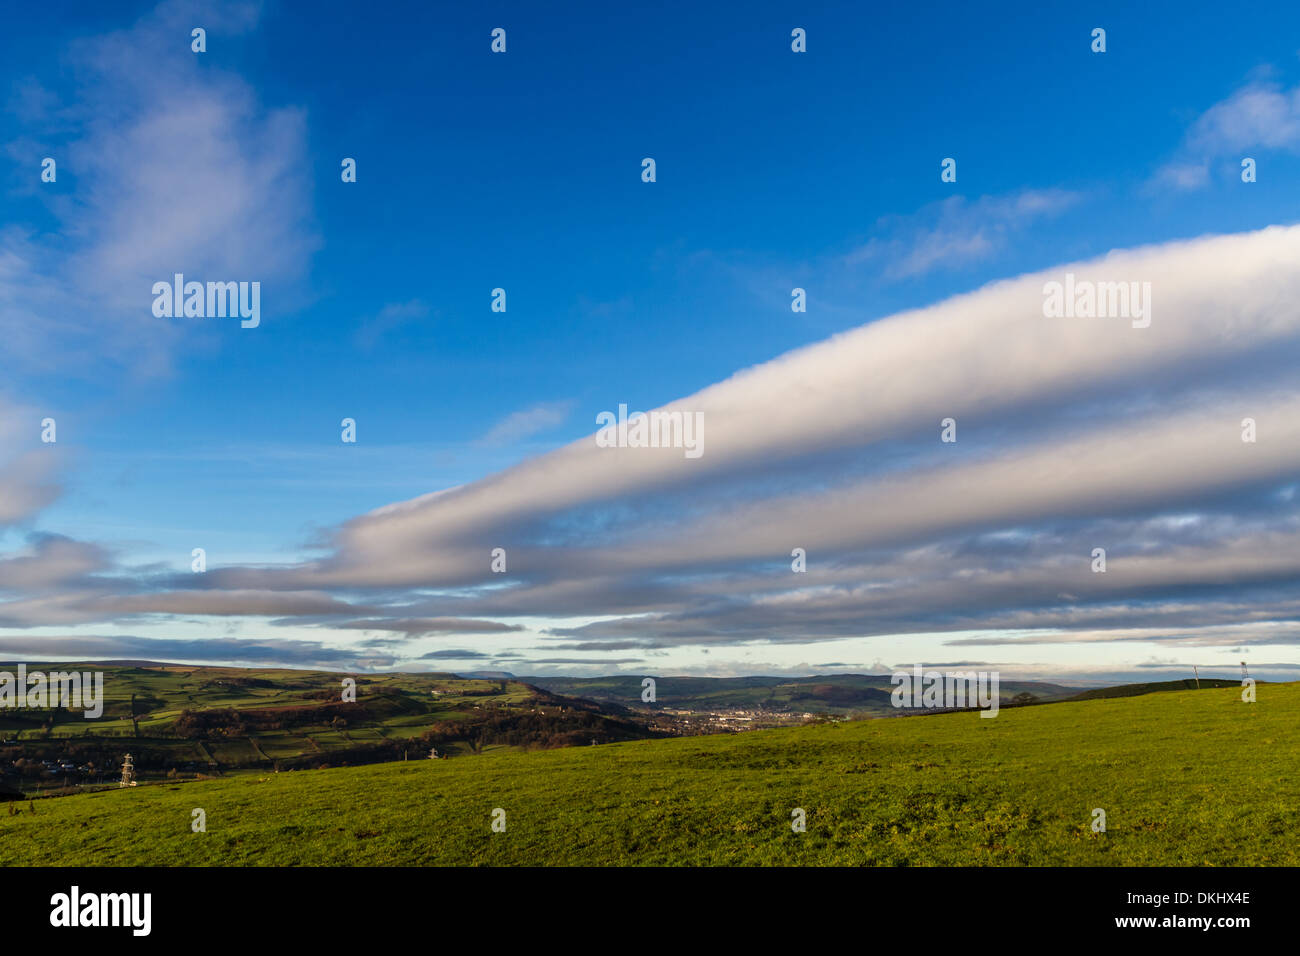 Keighley cloudscape from the rural  moors, Yorkshire, UK - Stock Image